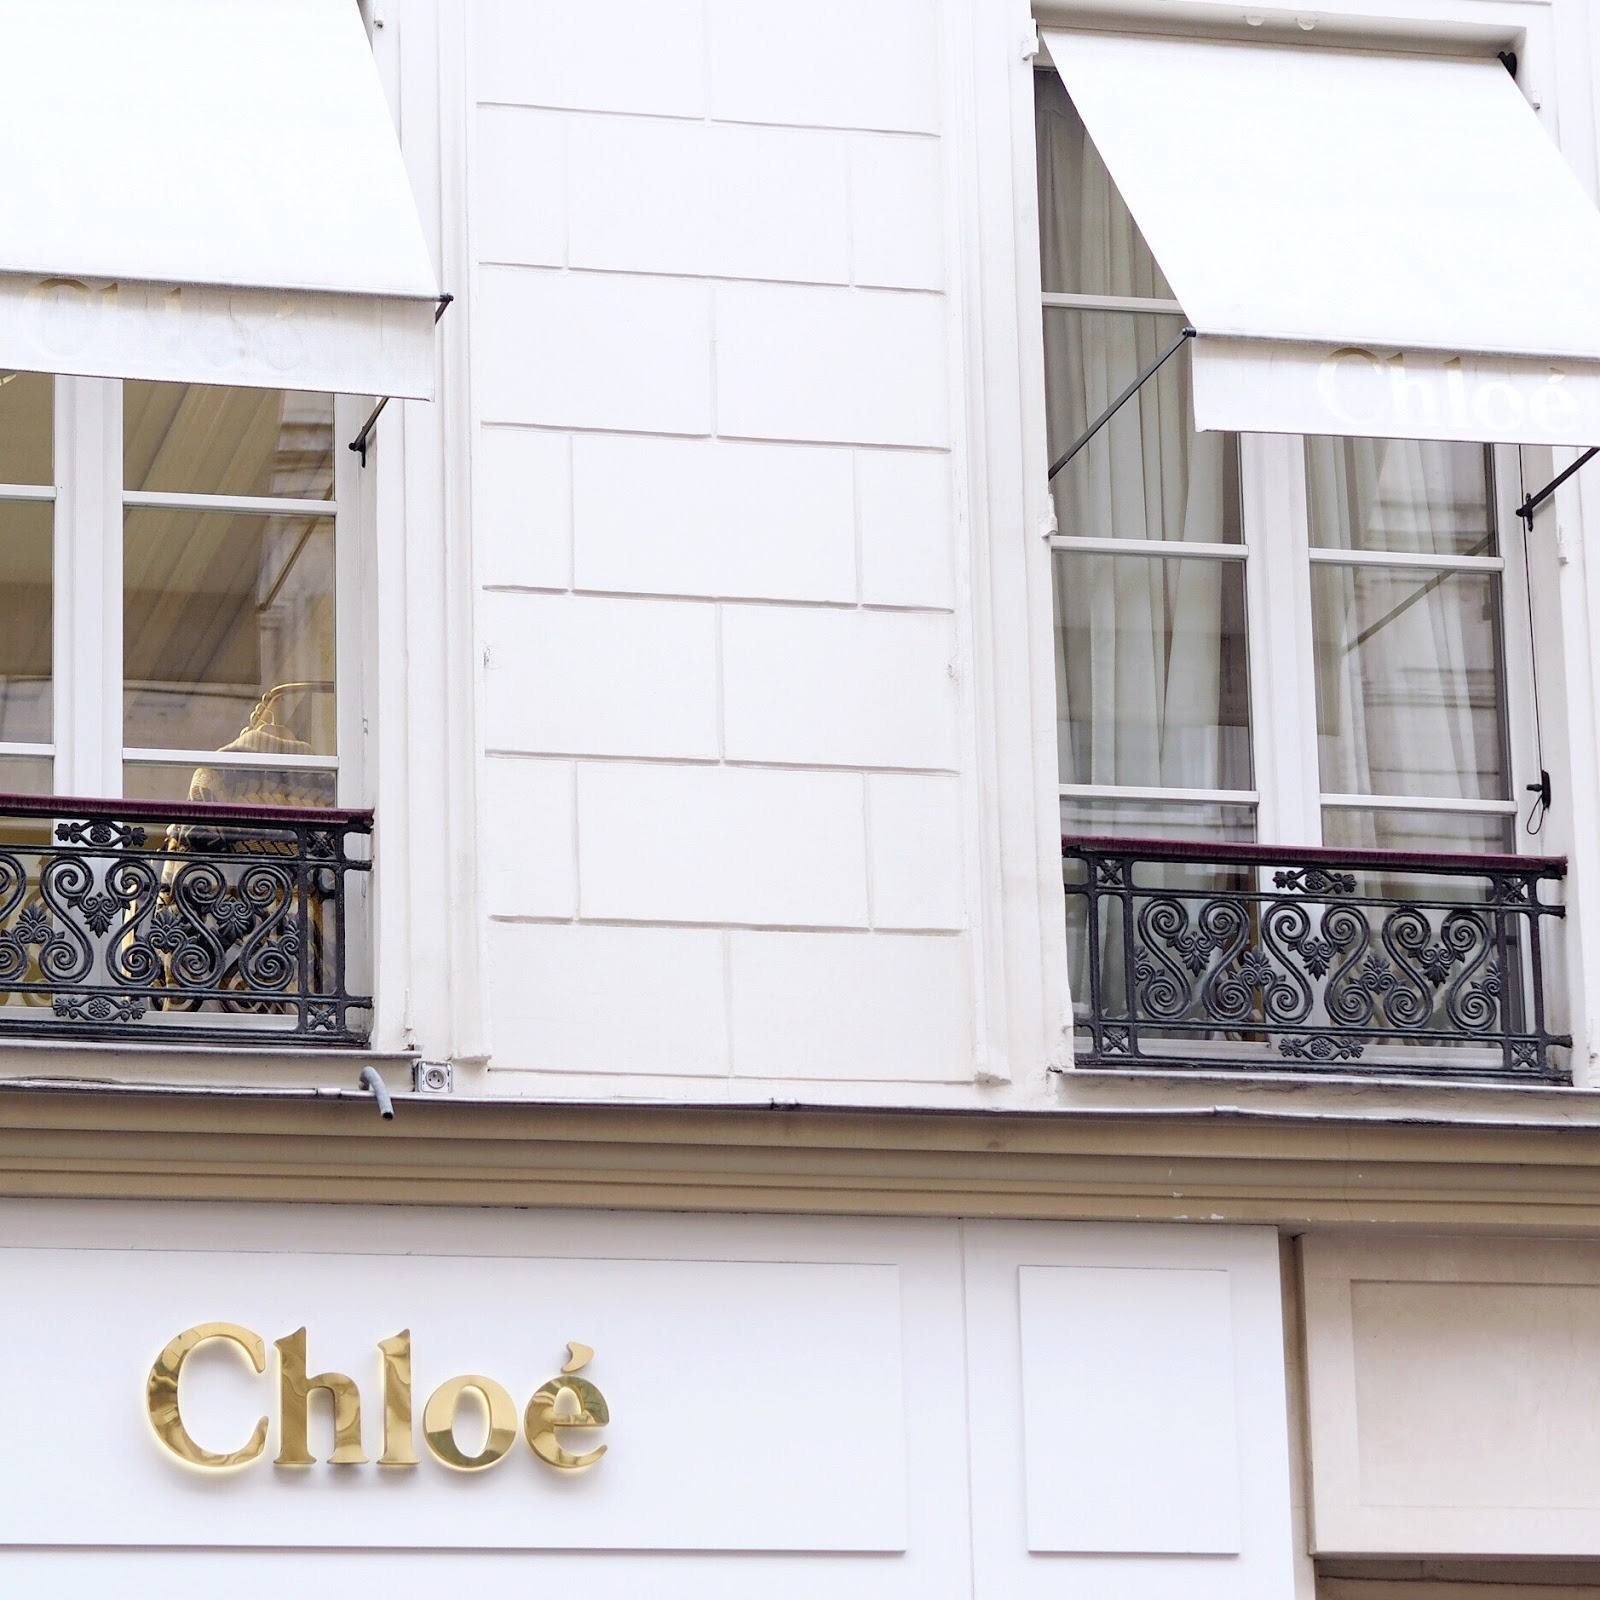 A Trip To The Beautiful City Of Paris | Love, Catherine